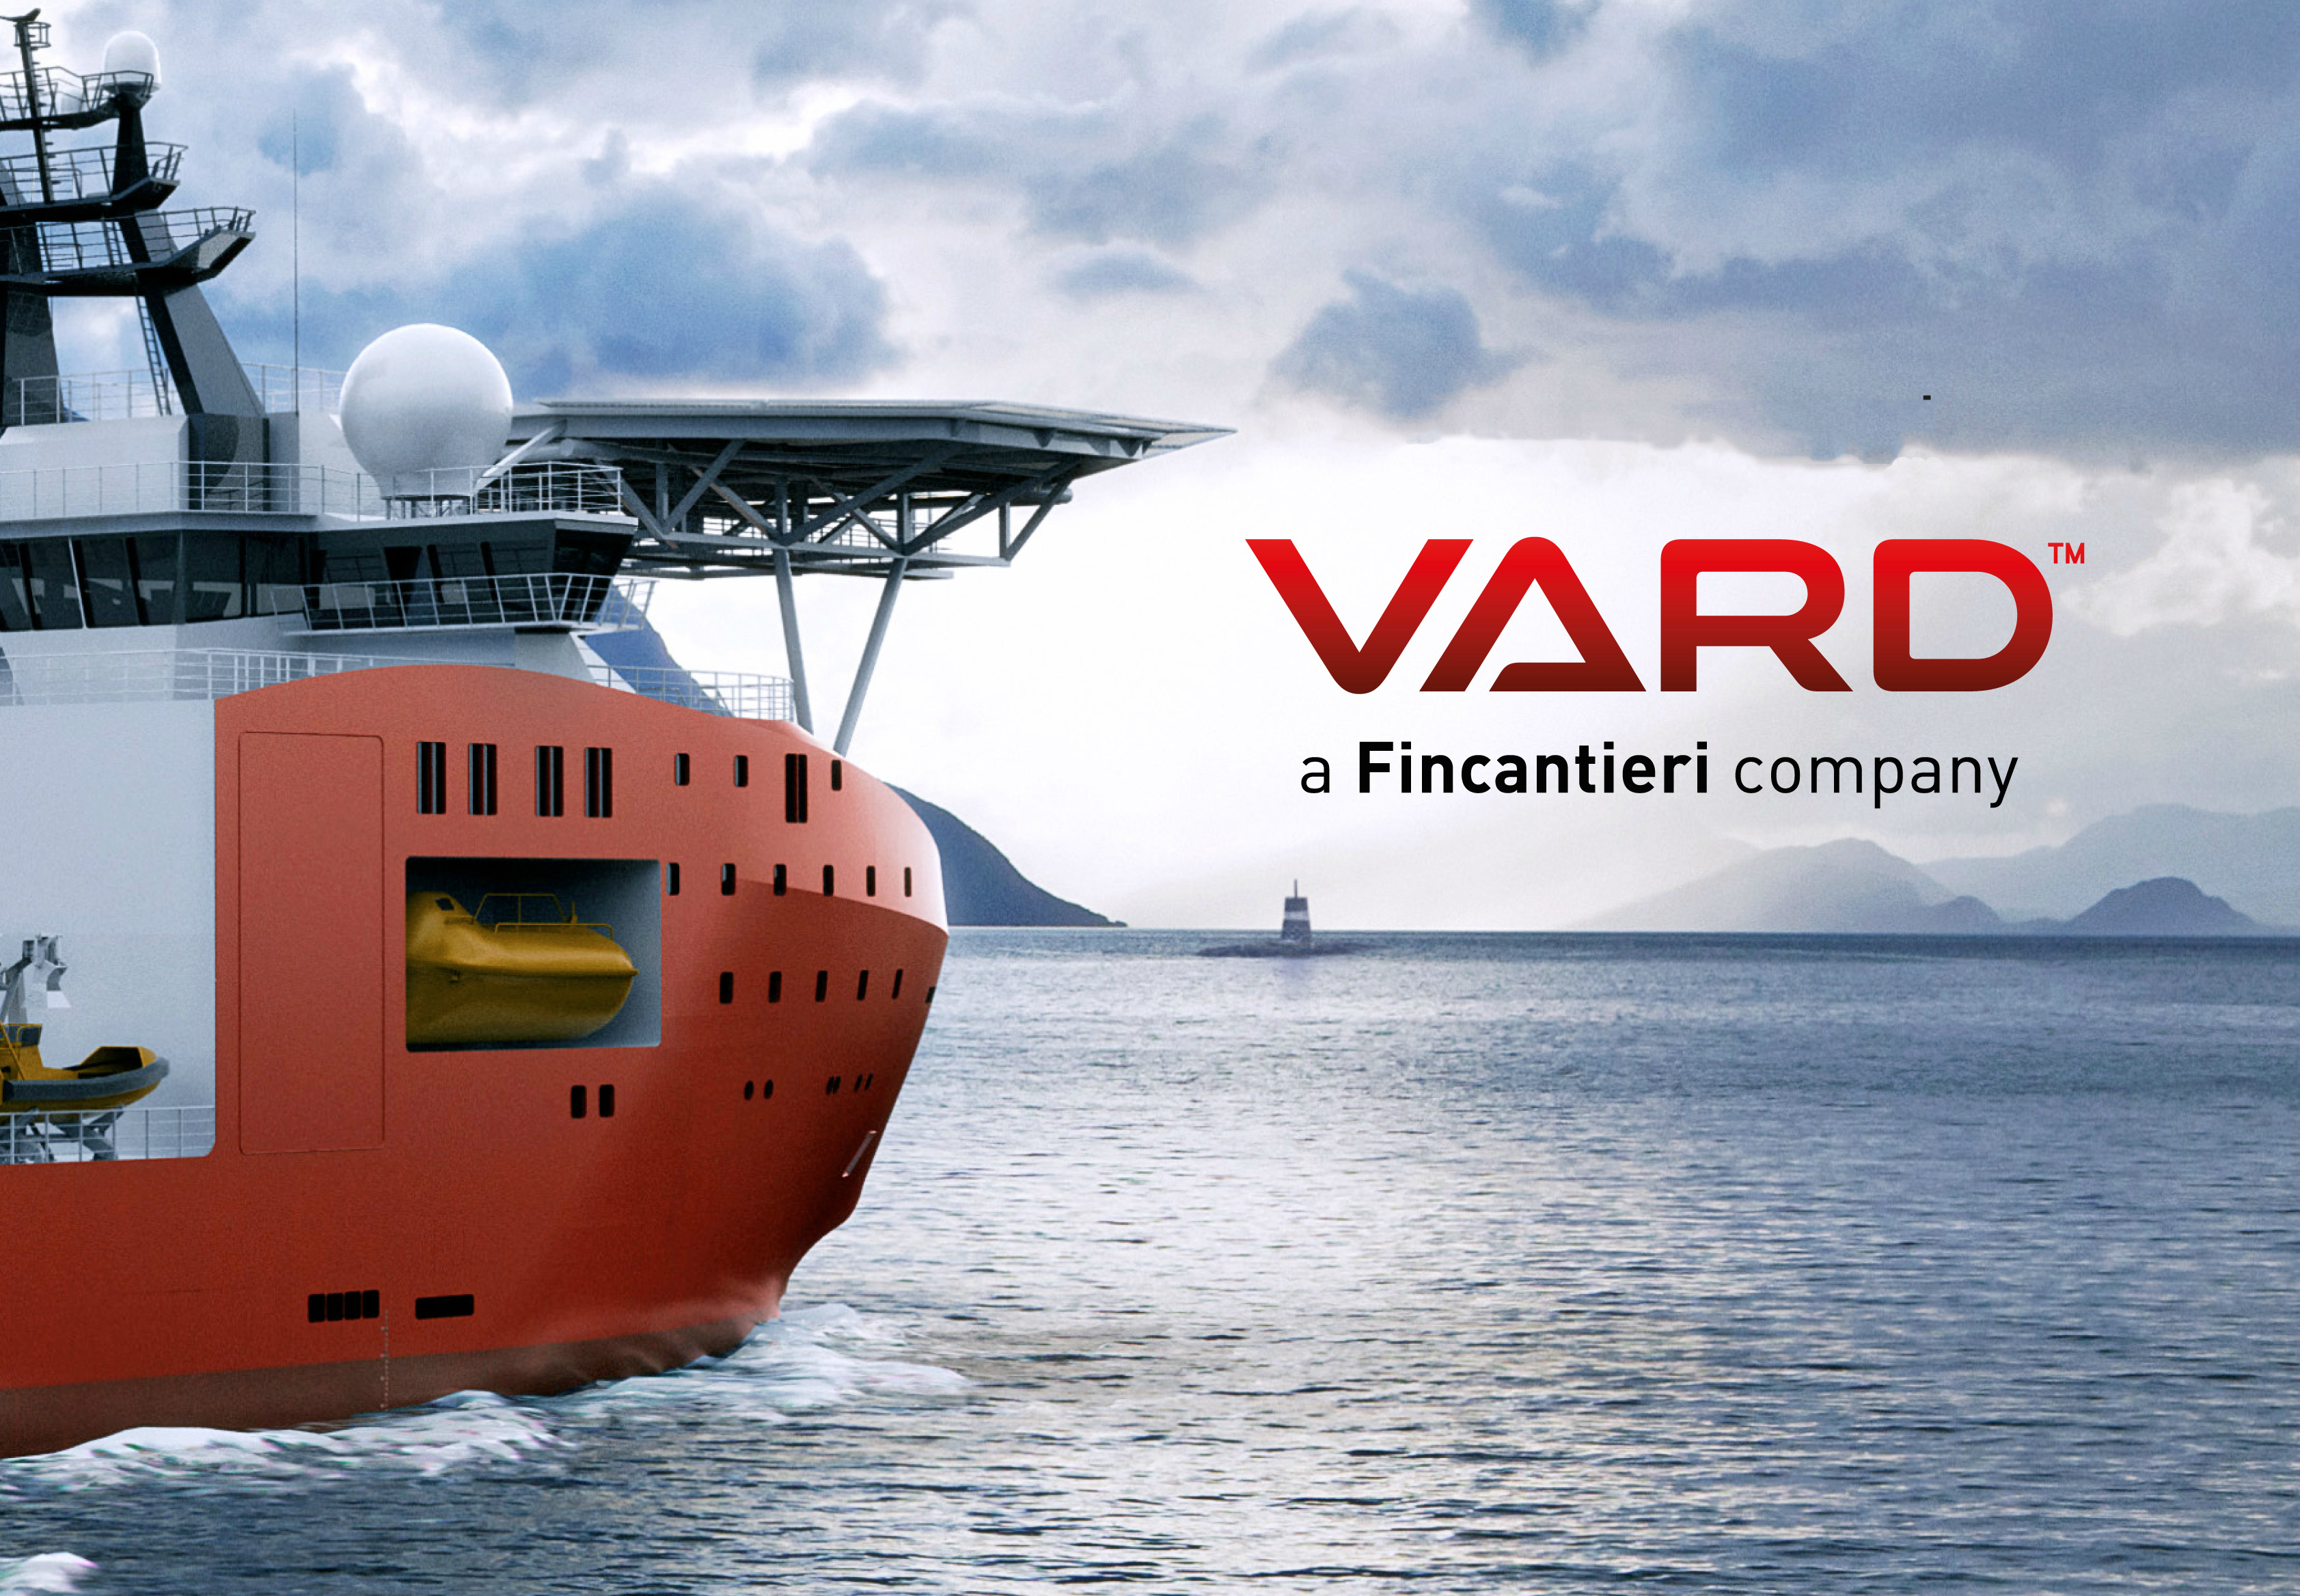 Fincantieri's Vard delivers world's first autonomous container feeder